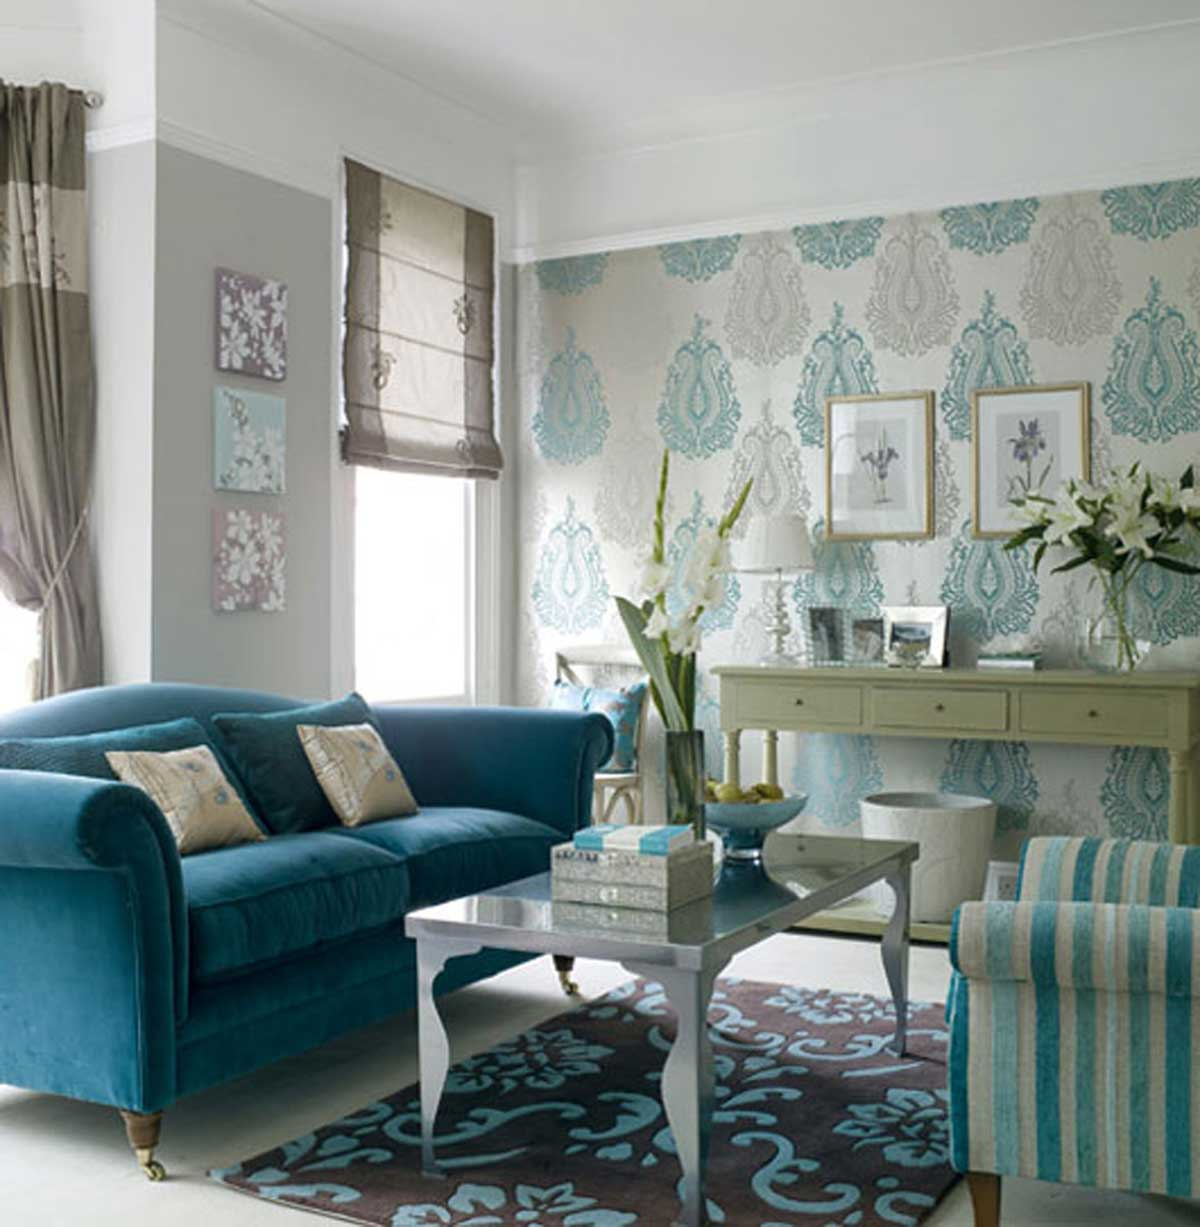 Superb Inspiring Blue Wallpaper Small Living Room Decoseecom 1200x1227